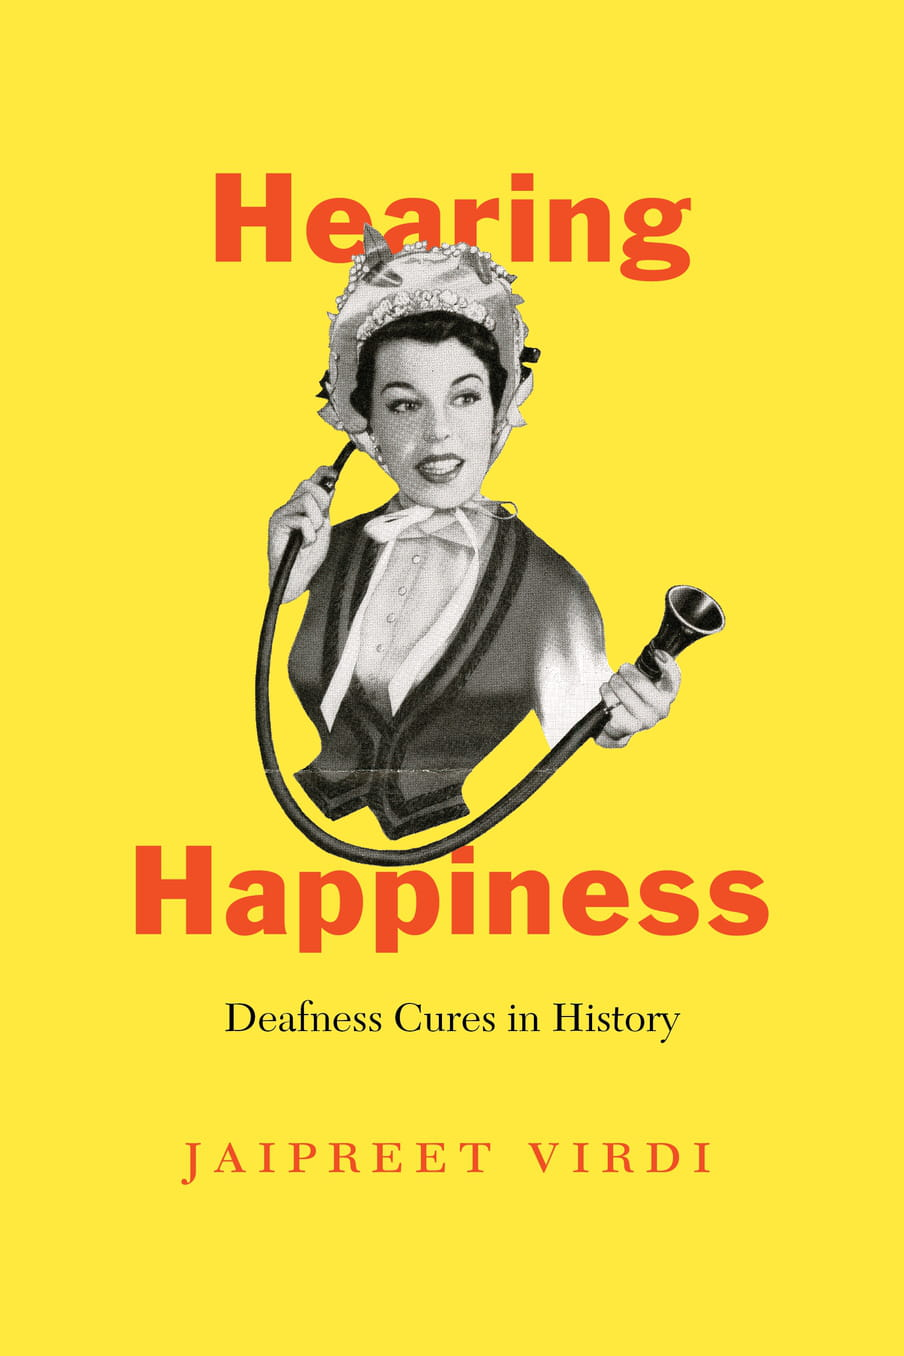 The cover of Hearing Happiness: Deafness Cures in History by Jaipreet Virdi